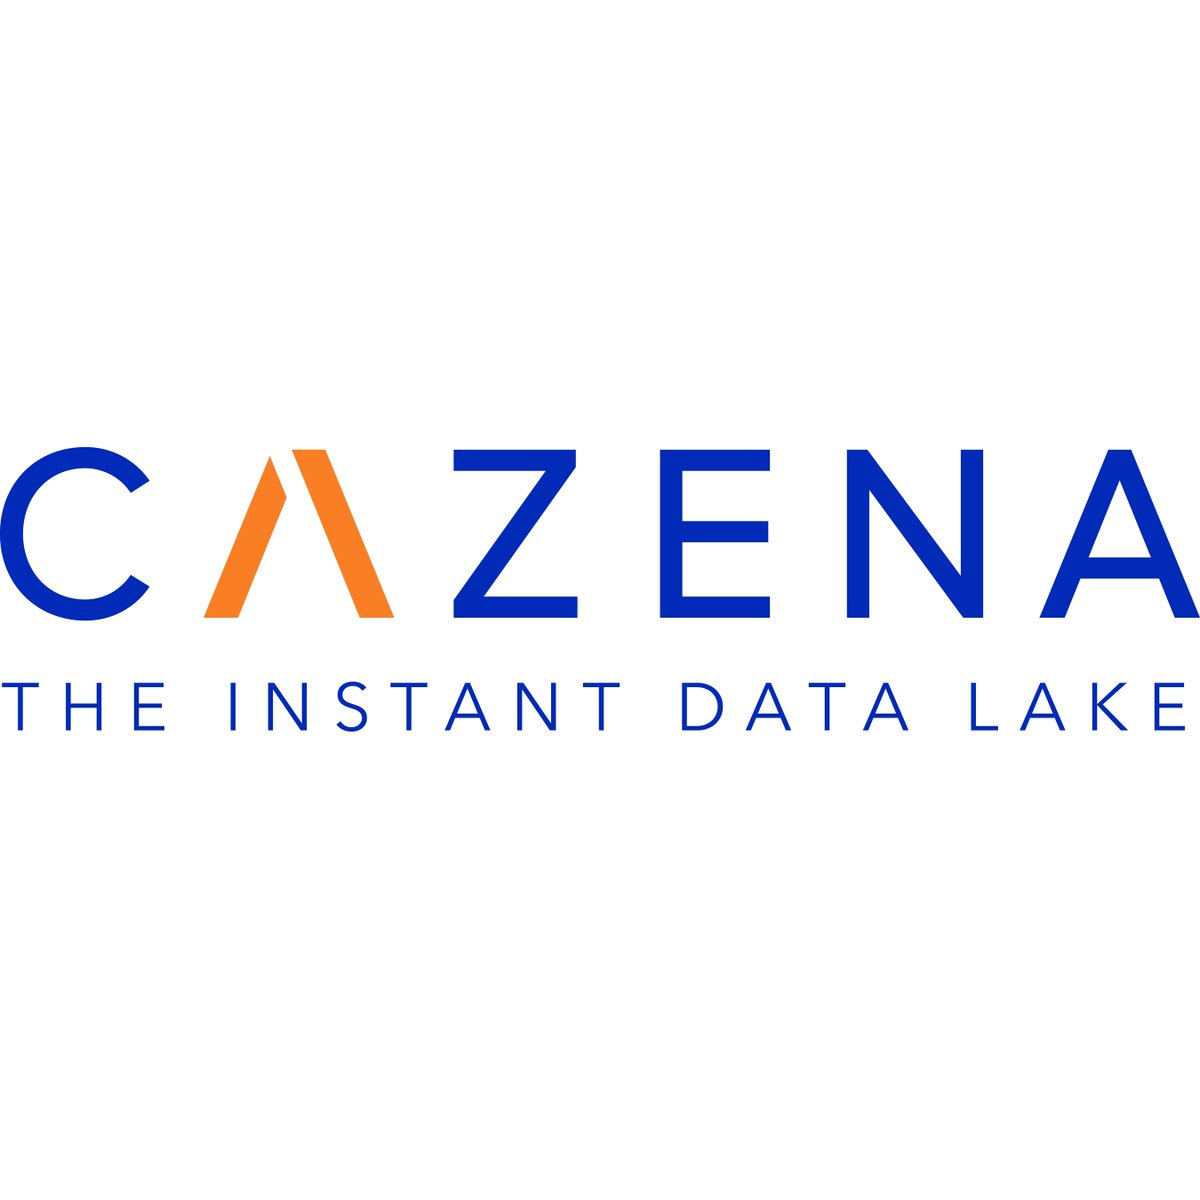 Cazena Launches the Instant™ Cloud Data Lake, Expands Executive Team, Closes New Funding Round. Experience the Instant Data Lake Cazena.com. prn.to/3gFc0T8